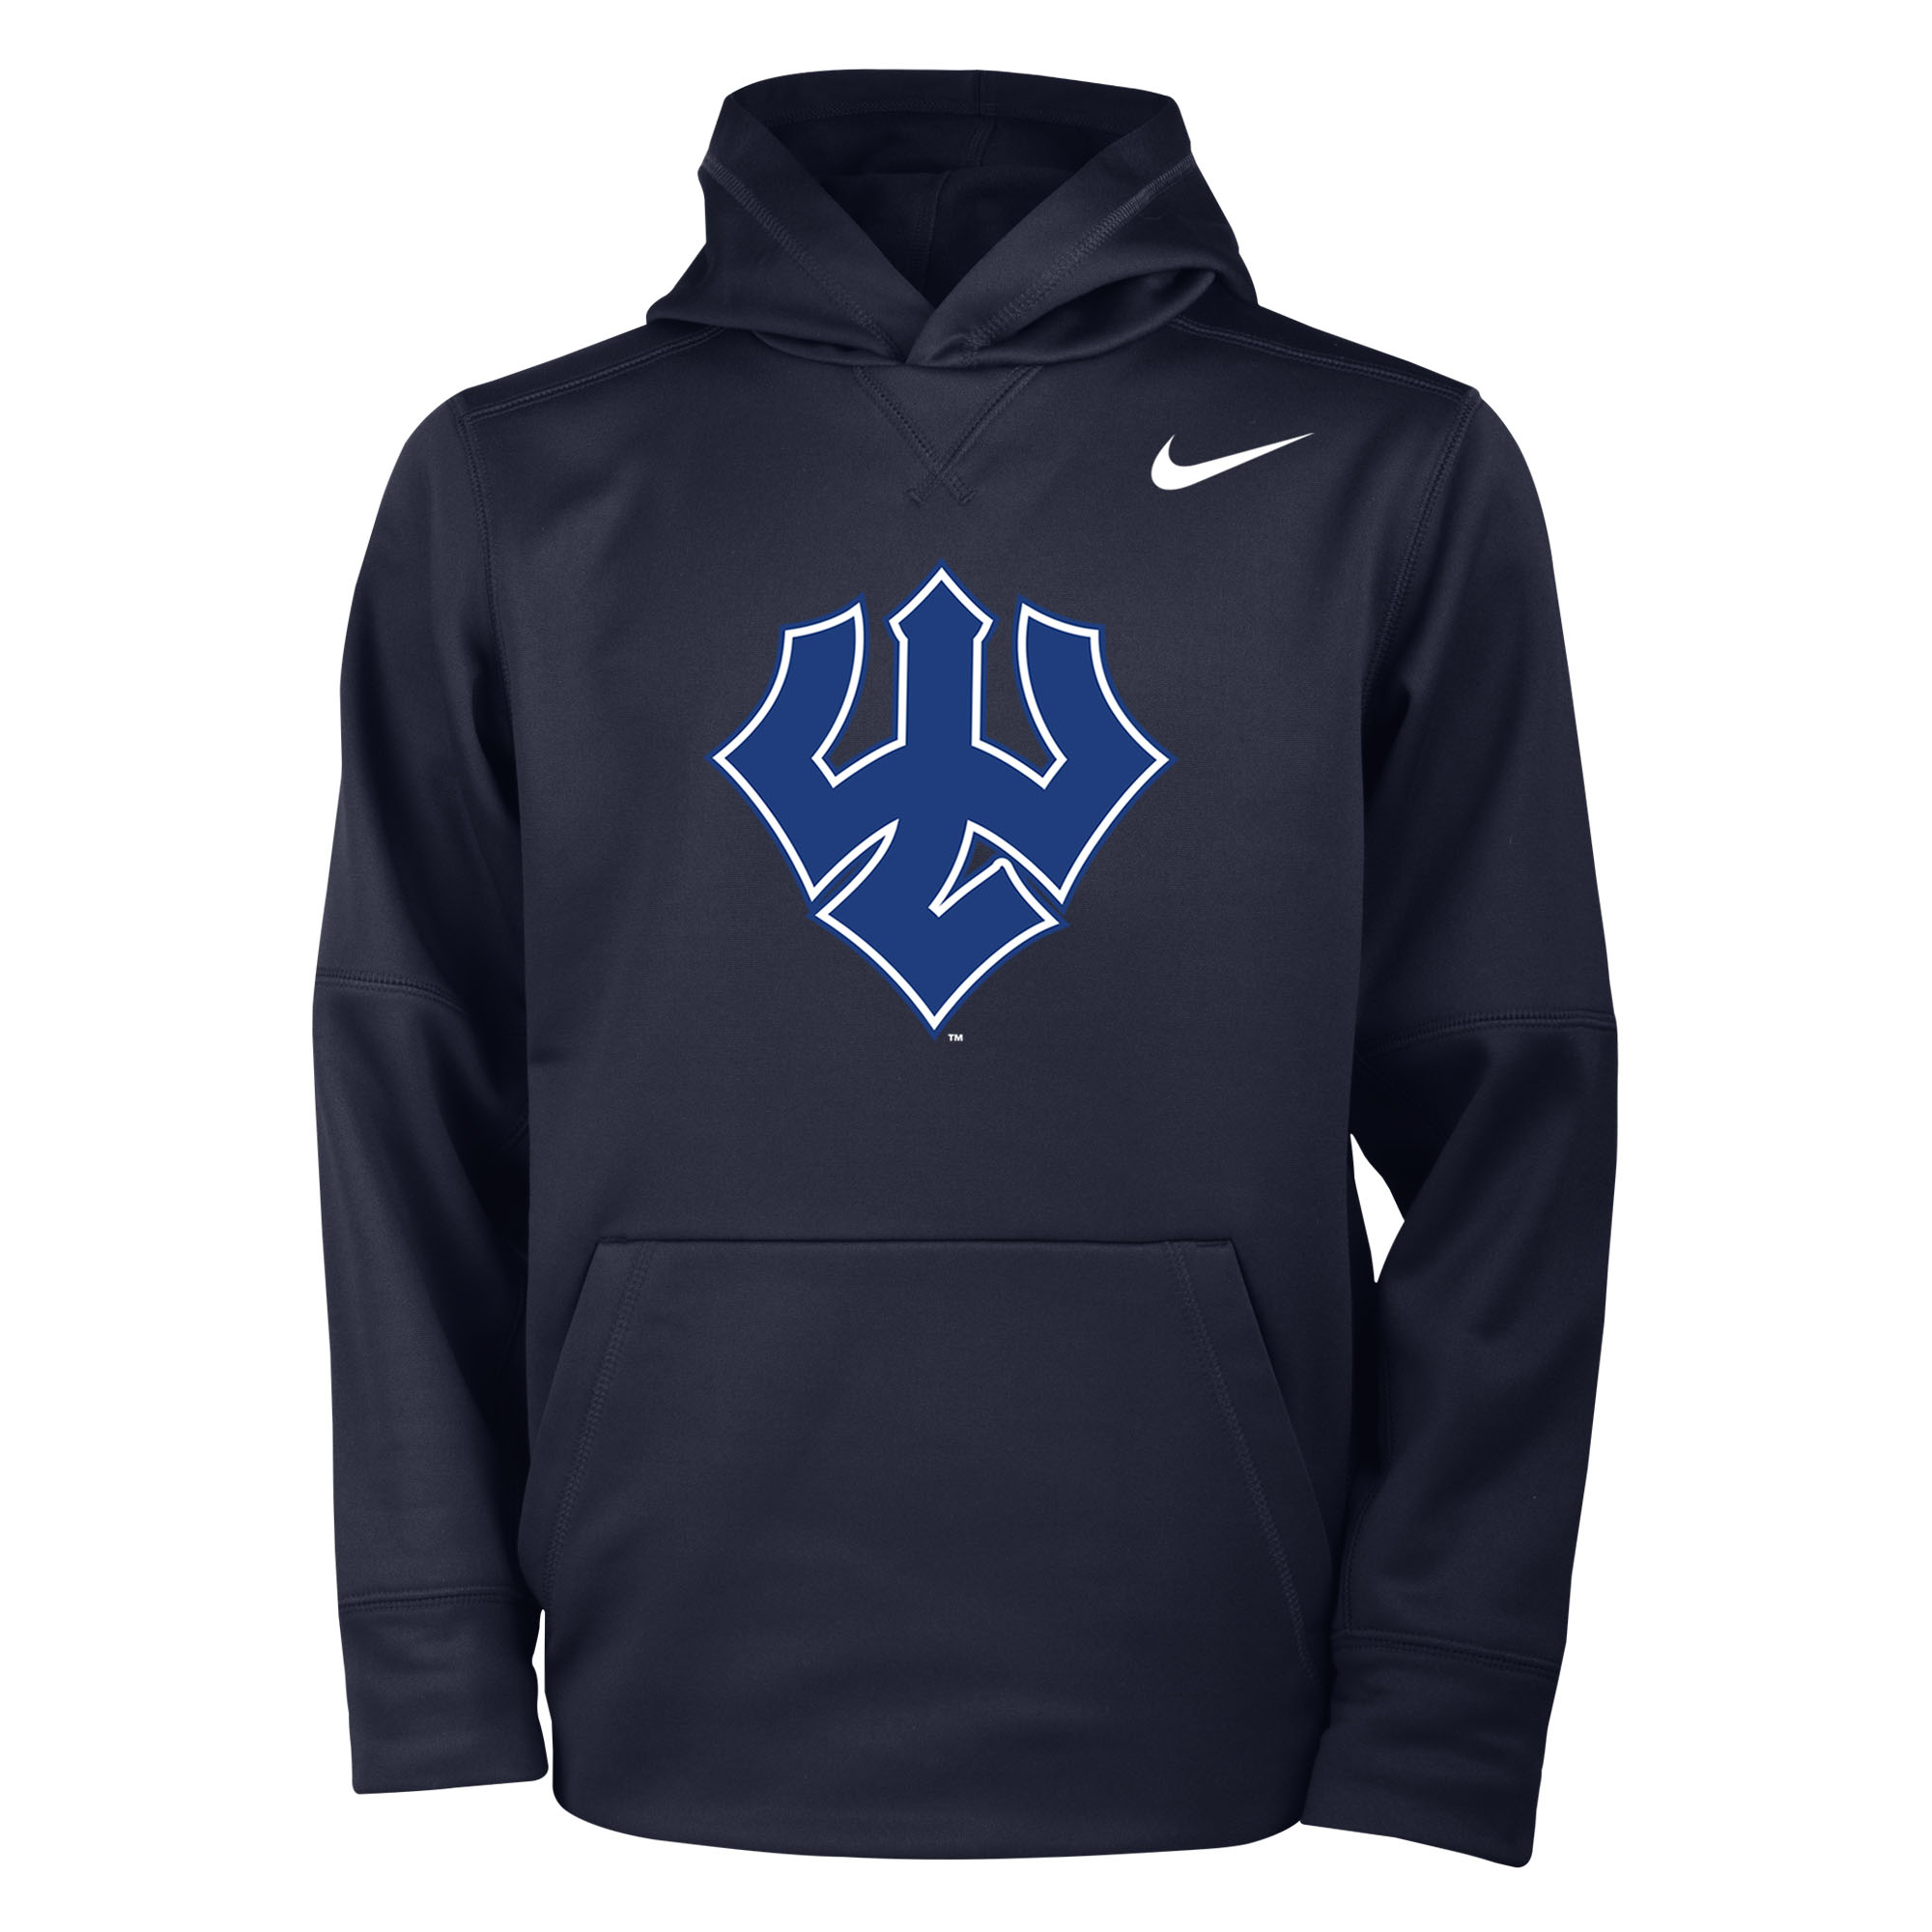 Image For Nike Therma Hoodie, Youth